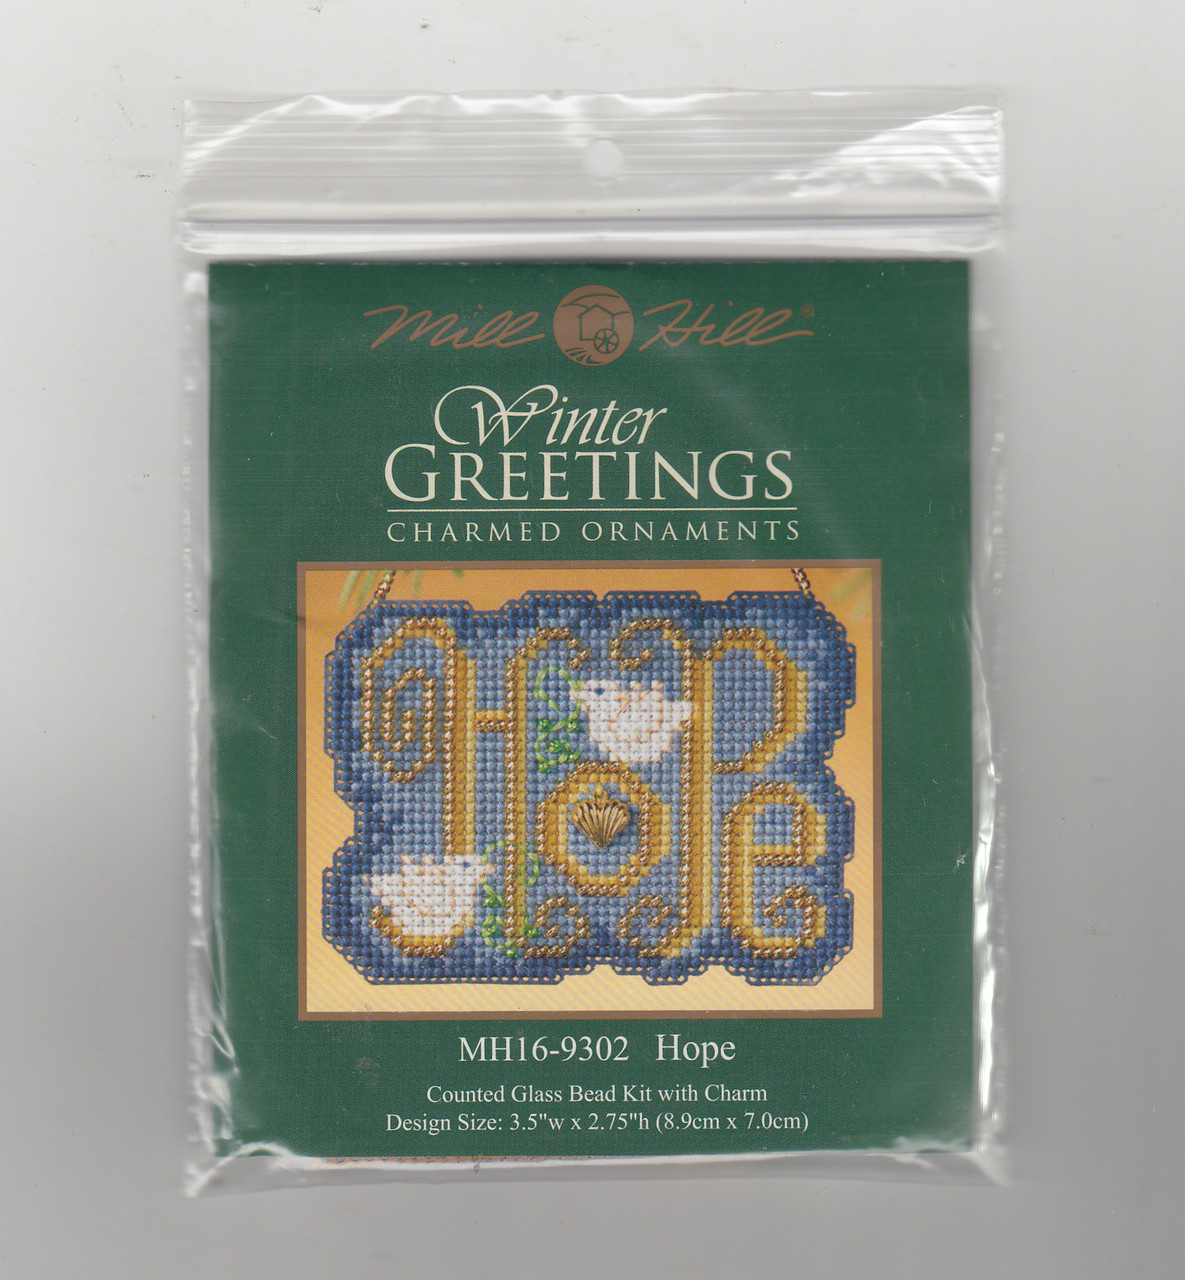 Mill Hill 2009 Winter Greetings Charmed Ornament - Hope